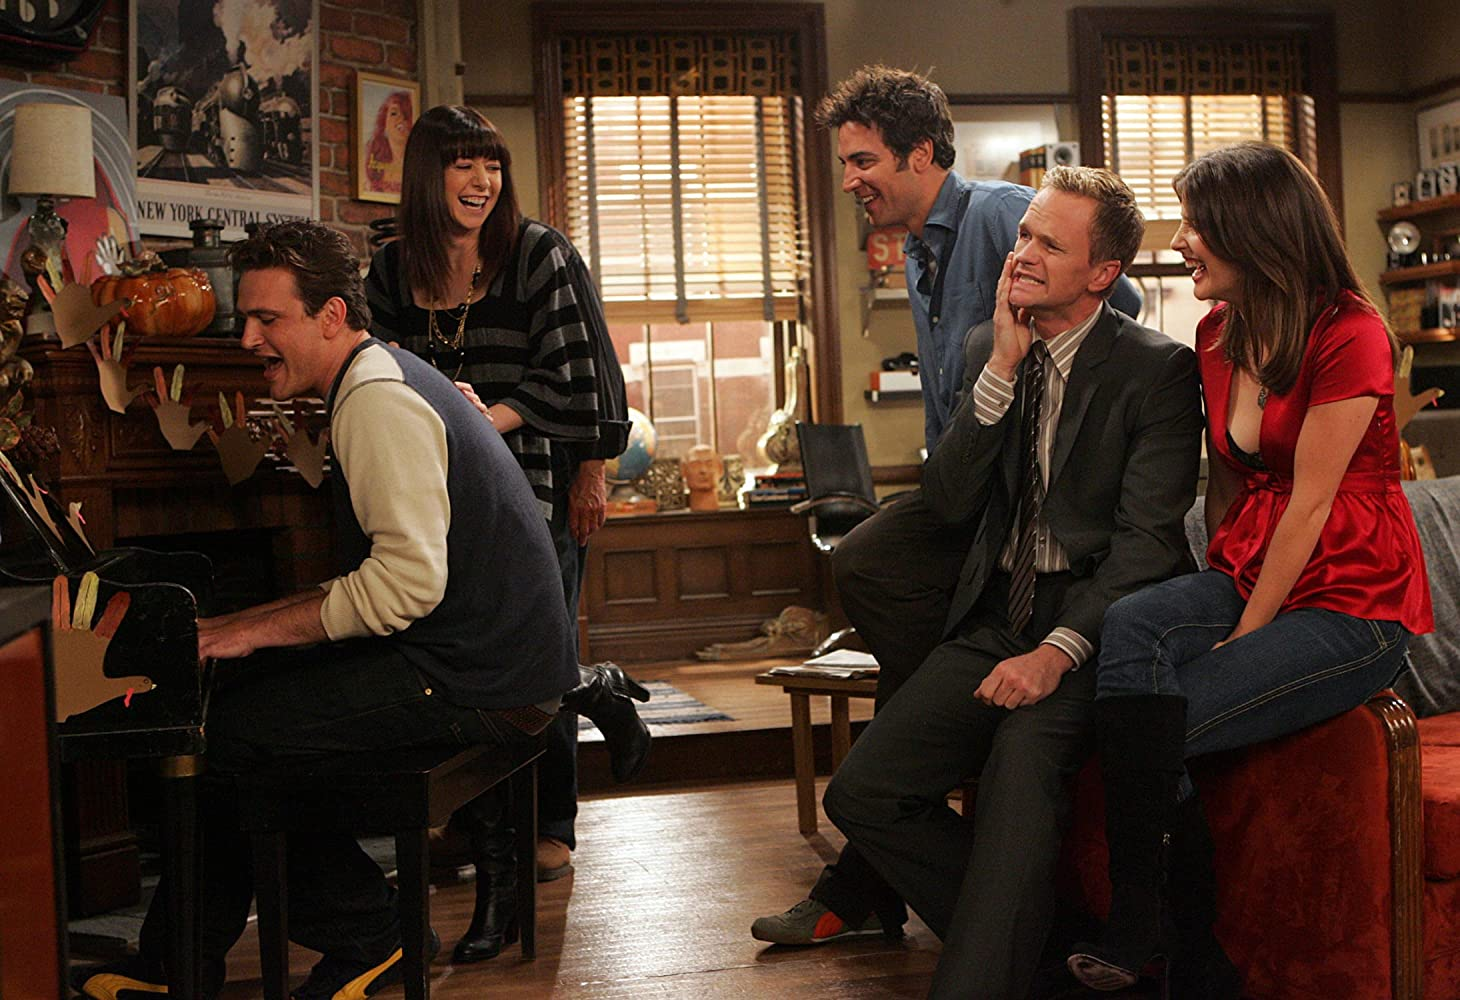 Neil Patrick Harris, Alyson Hannigan, Jason Segel, Josh Radnor, and Cobie Smulders in How I Met Your Mother (2005)